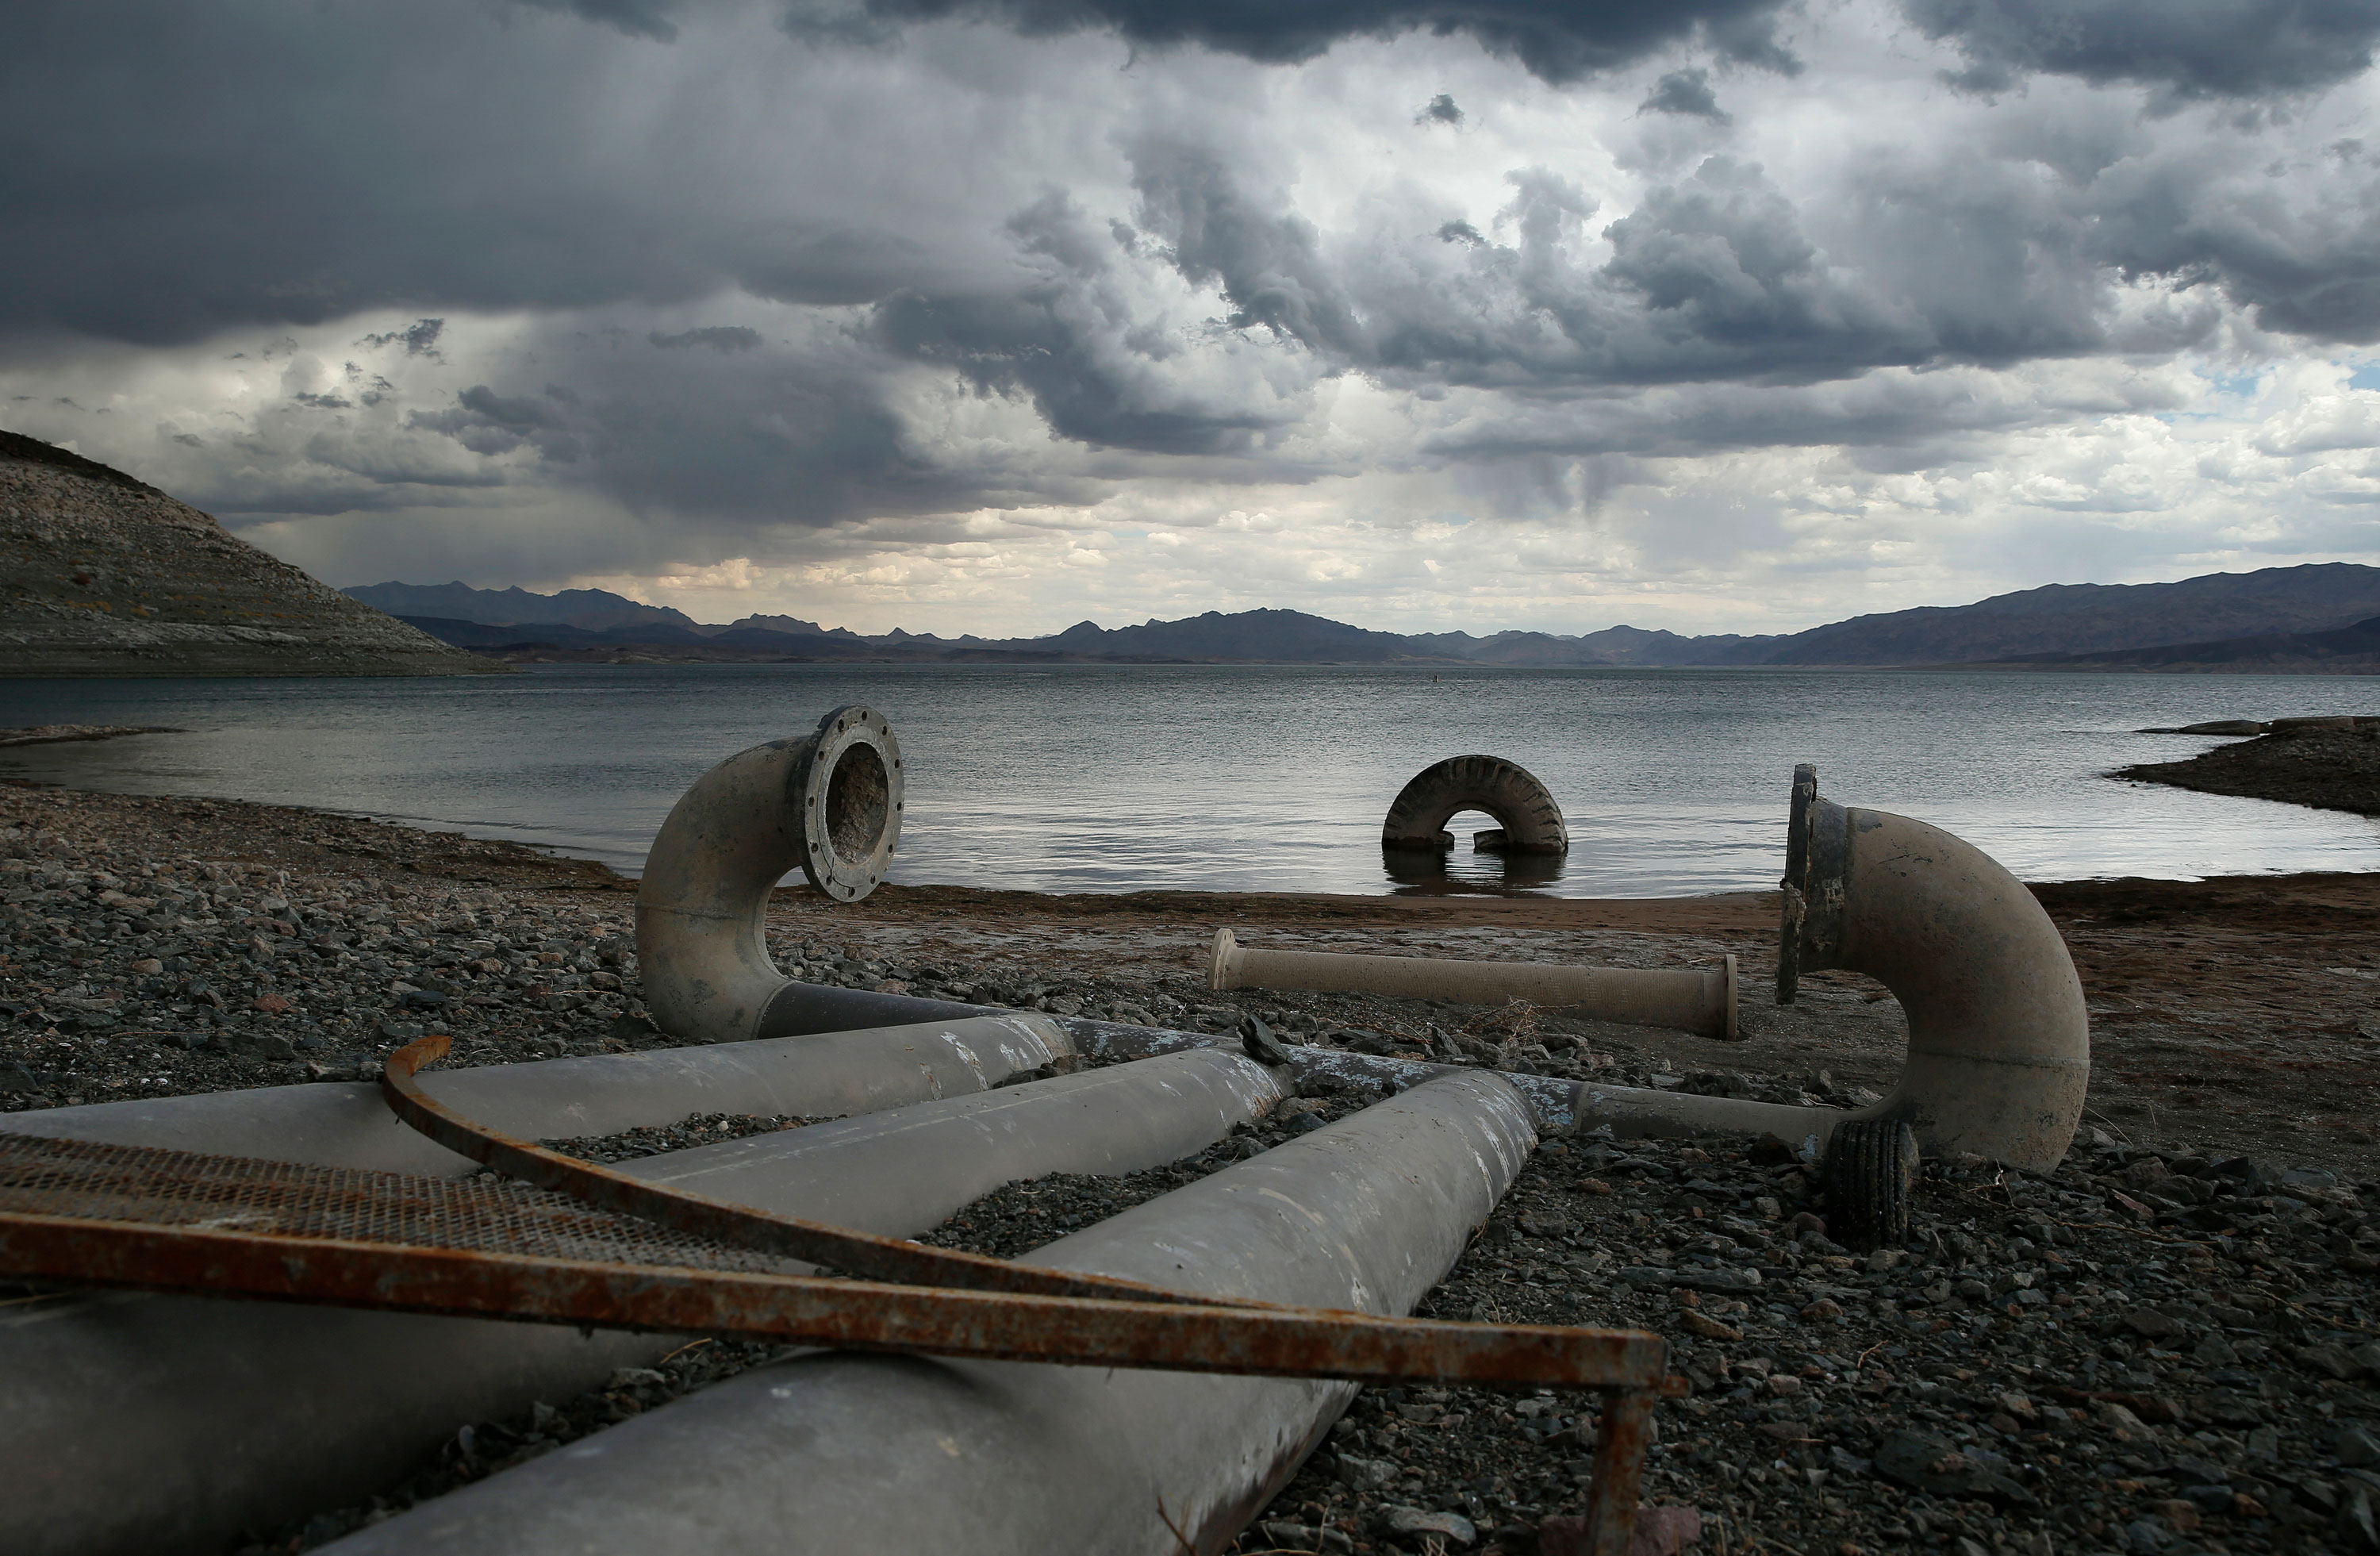 Photo: Colorado River Drought | Exposed Lake Mead Intake Pipes - AP